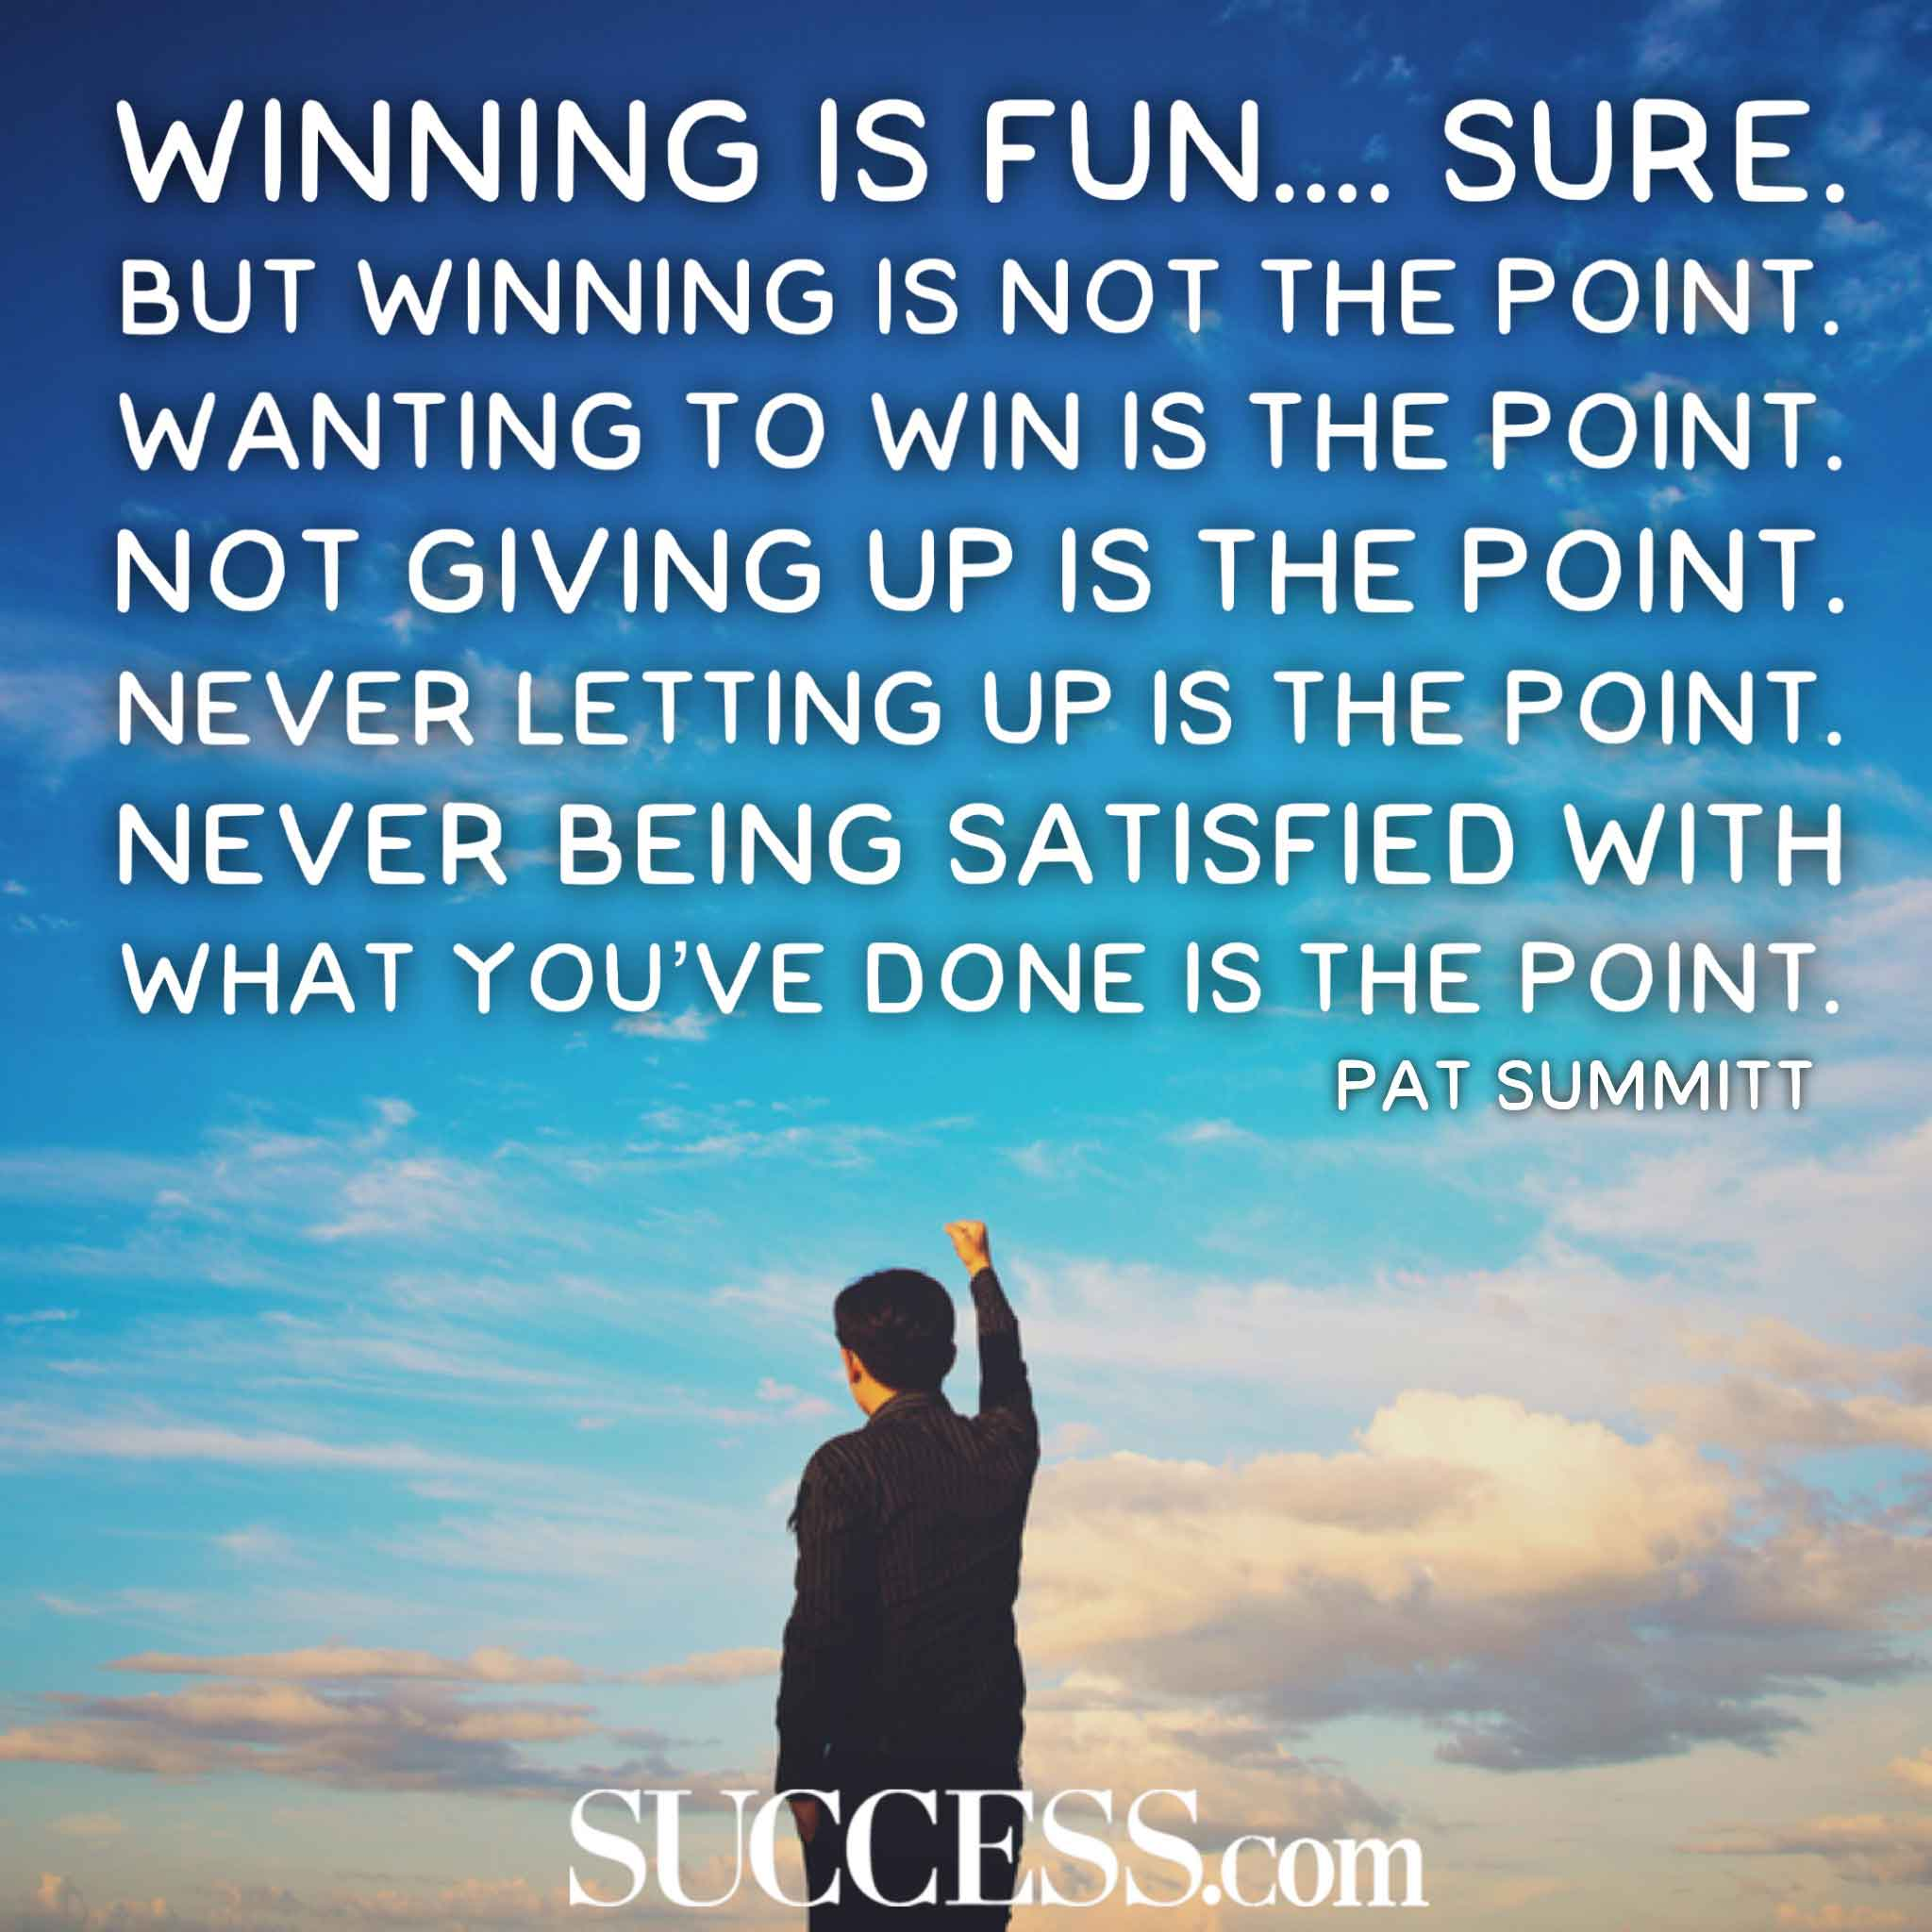 d3b61d85a8115f 13 Motivational Quotes About Winning